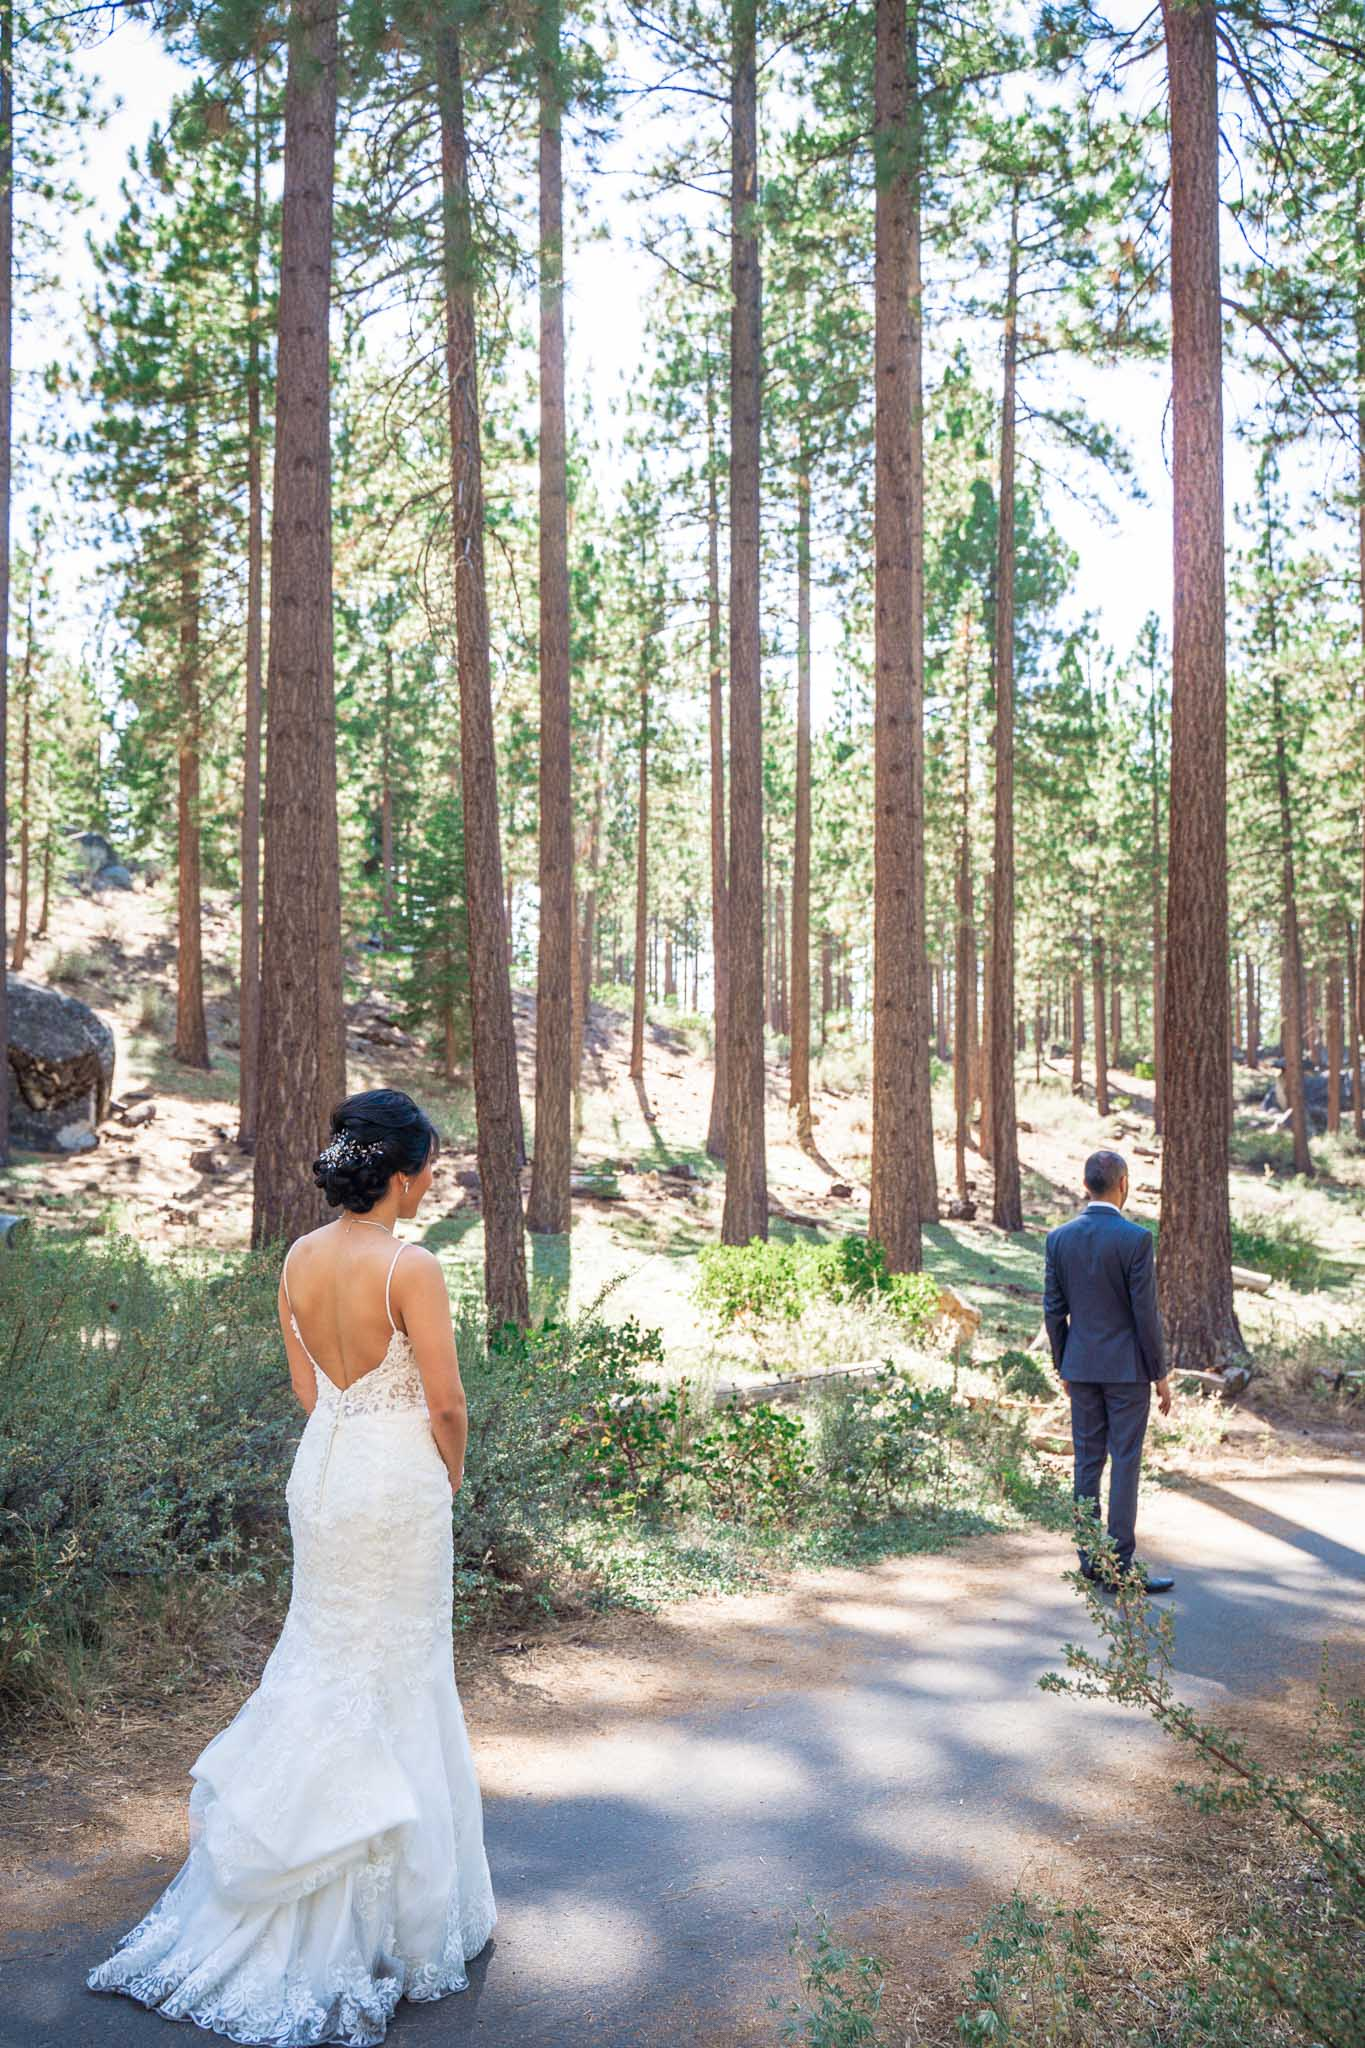 First look surrounded by pine trees in South Lake Tahoe